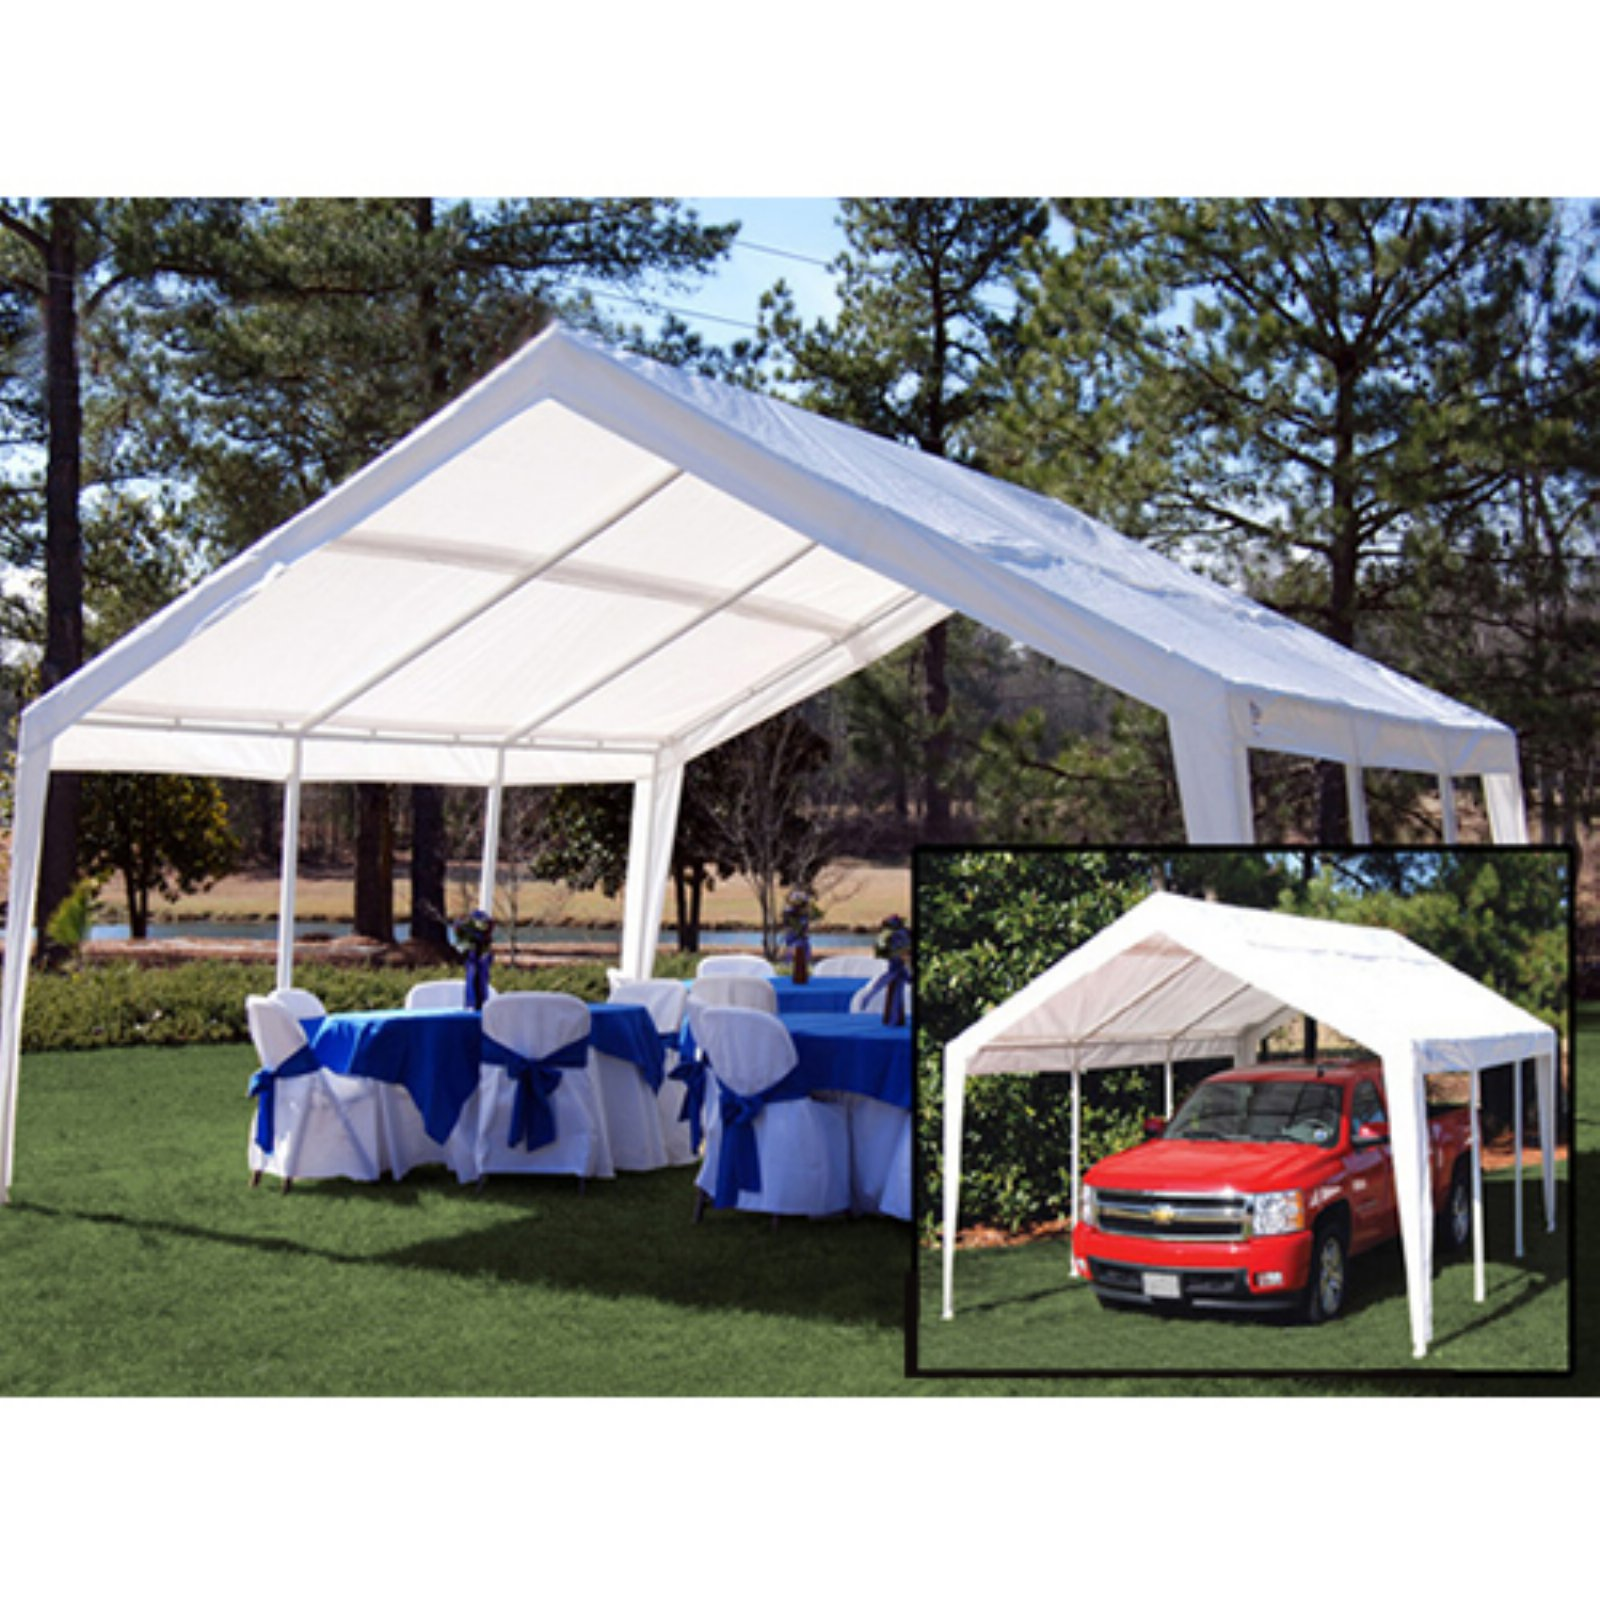 King Canopy 12 x 20 ft. Fitted Replacement Carport Cover for EX1220 Canopies